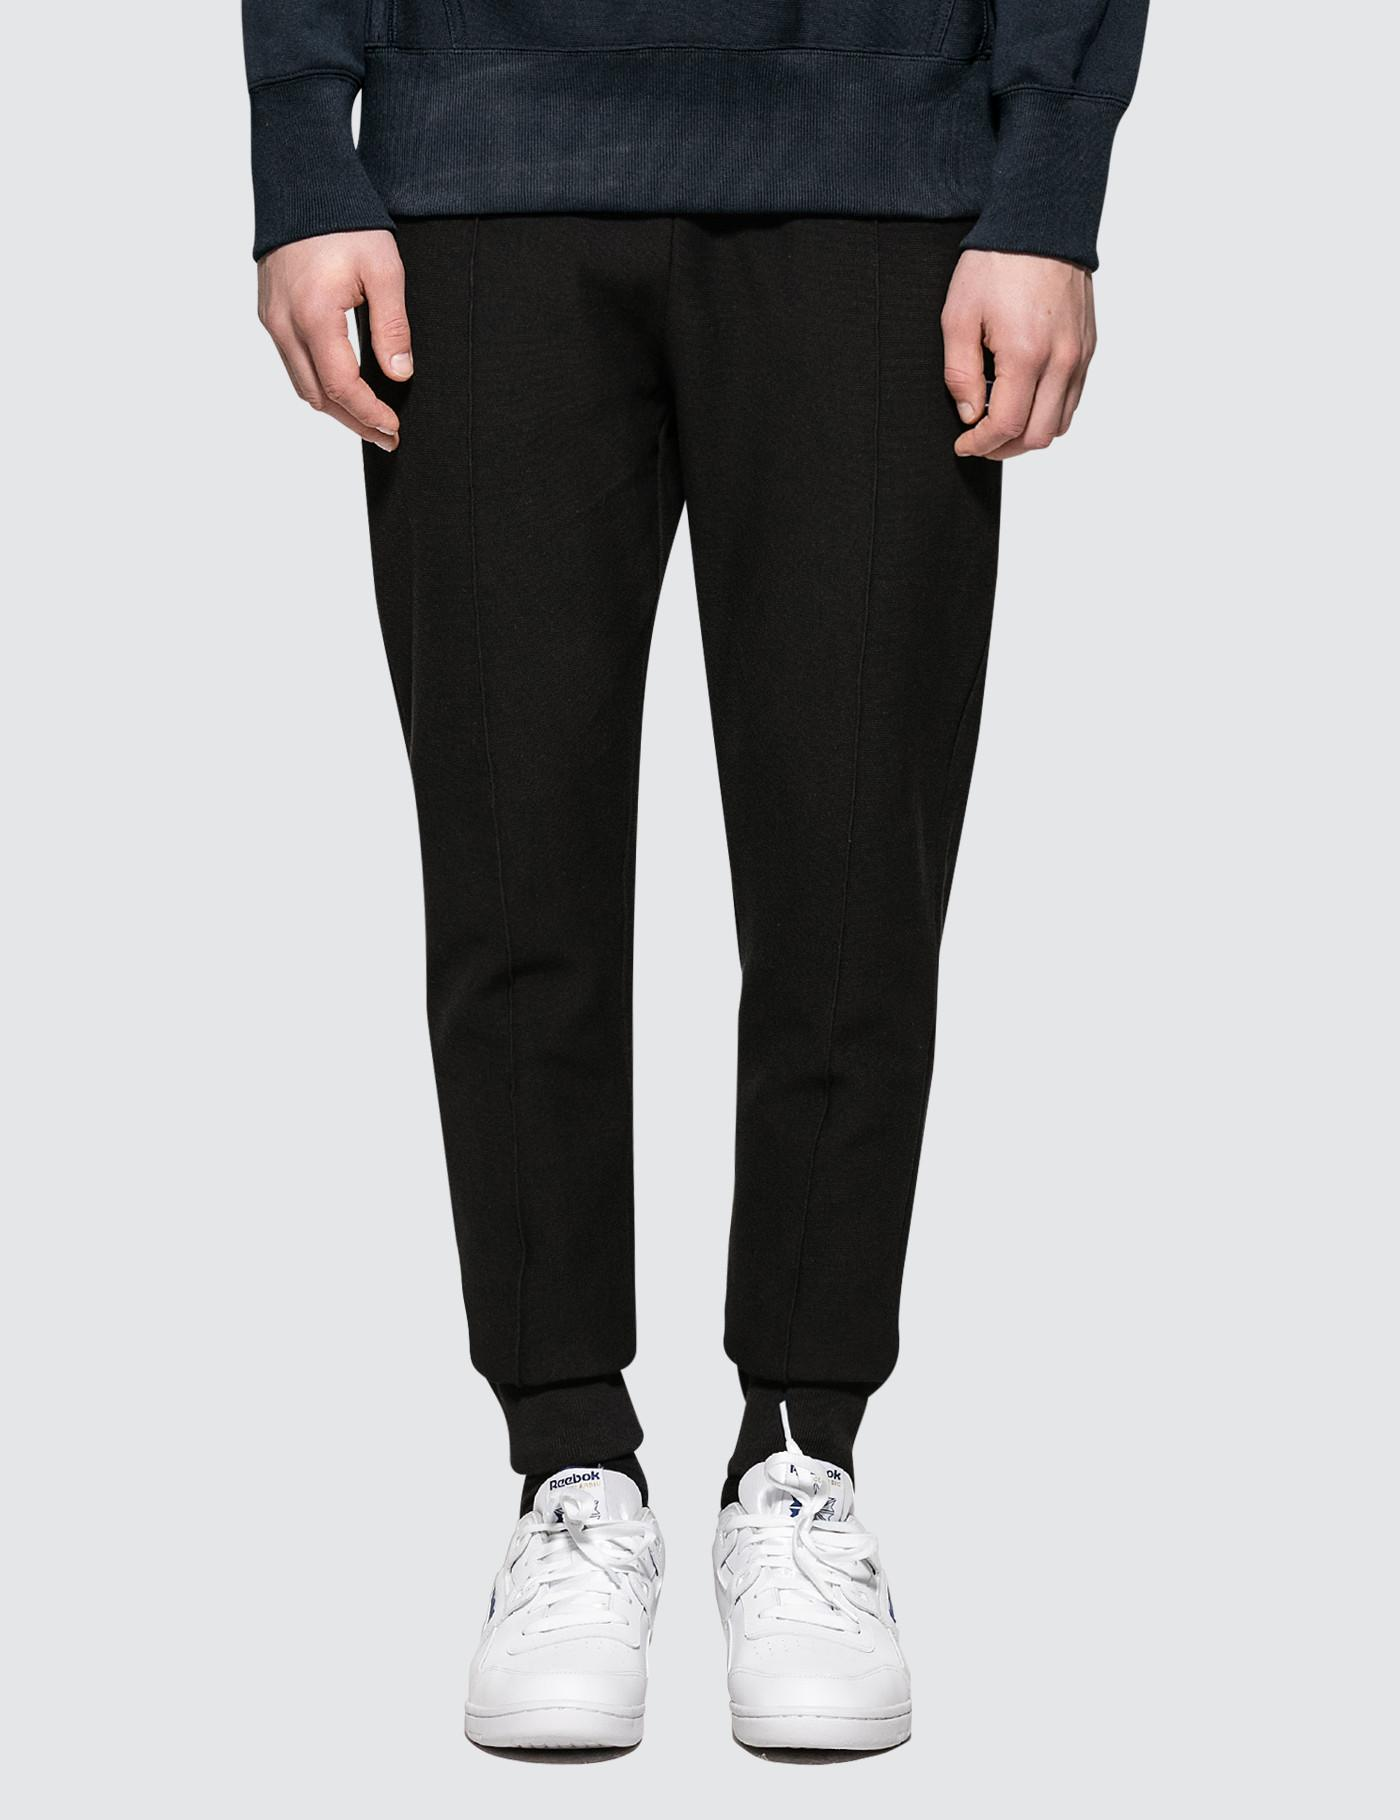 ddd542e79e95 Champion Rib Cuff Sweat Pants in Black for Men - Lyst